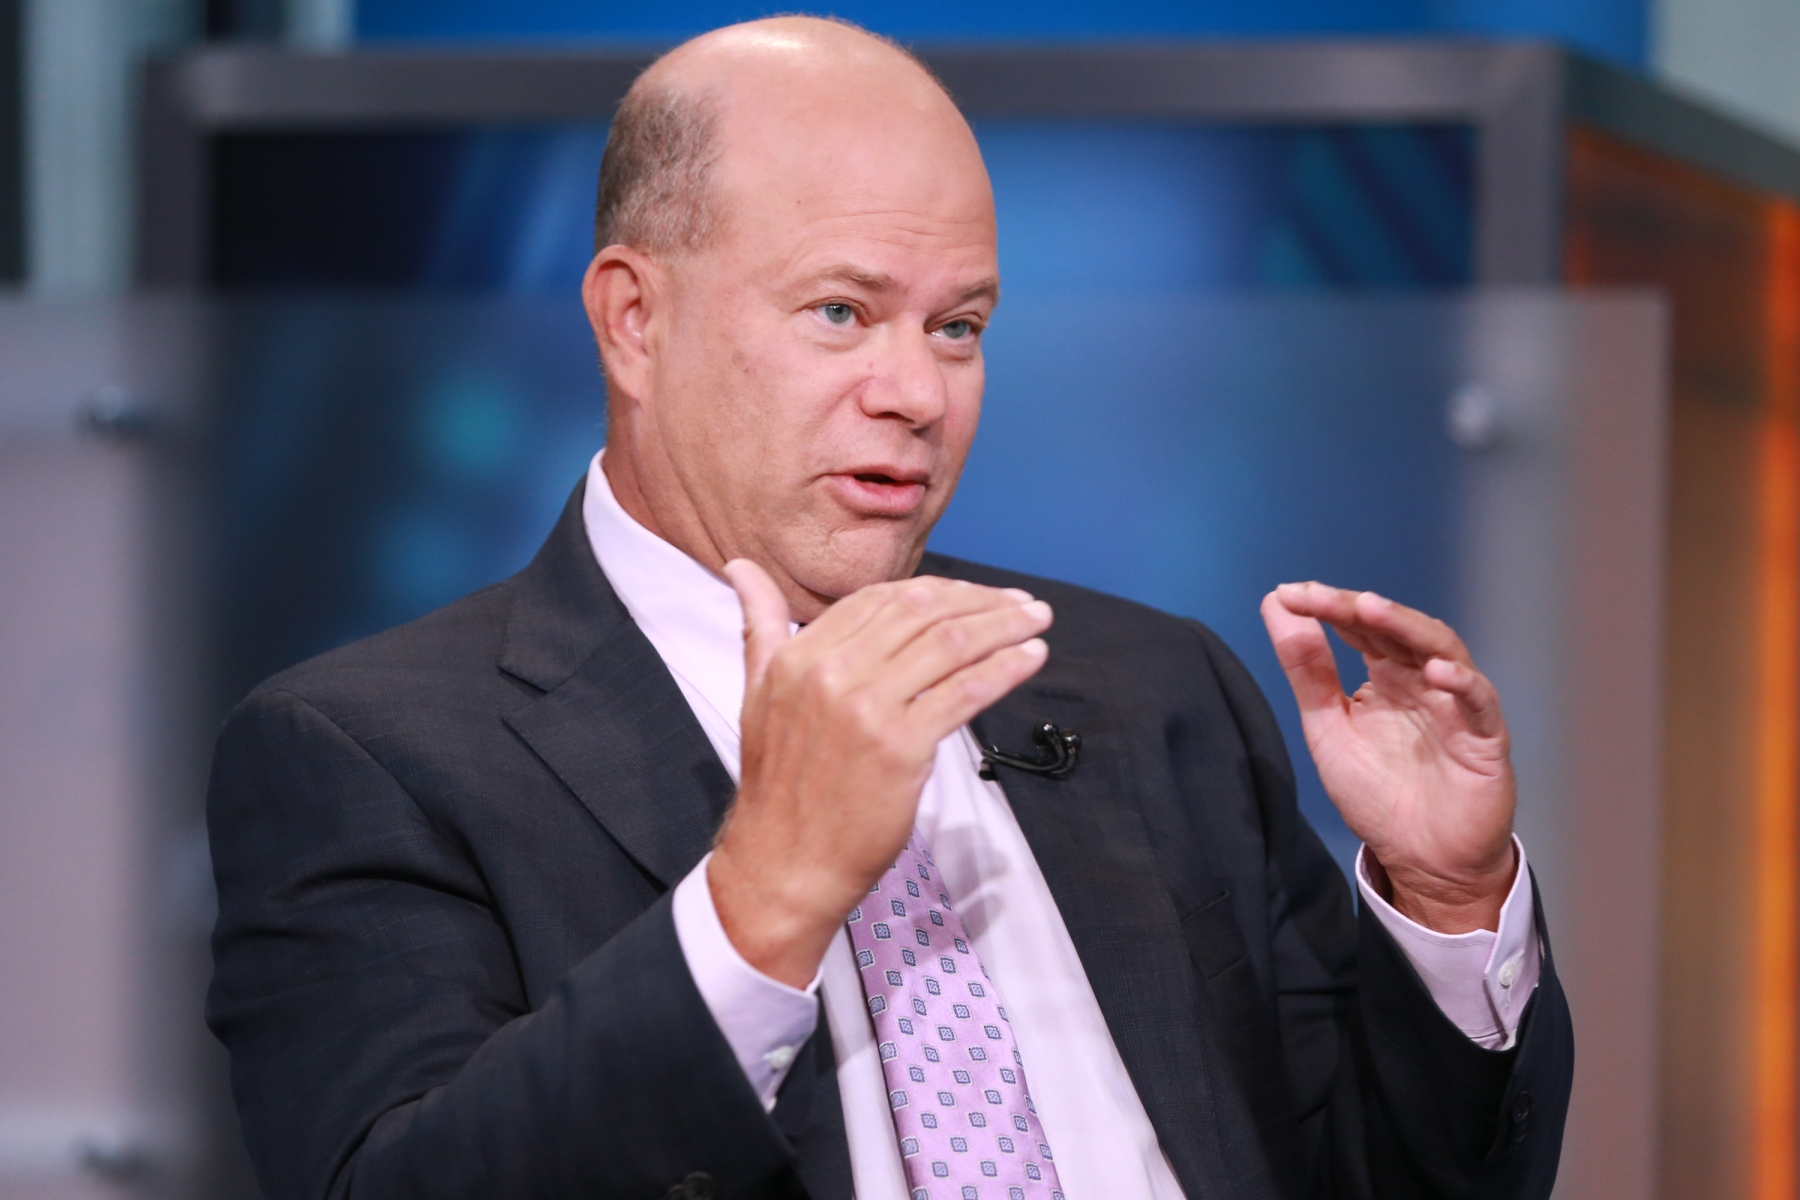 David Tepper, president and founder of Appaloosa Management, in an interview on September 10, 2015 -- (Photo by: David Orrell/CNBC/NBCU Photo Bank via Getty Images)